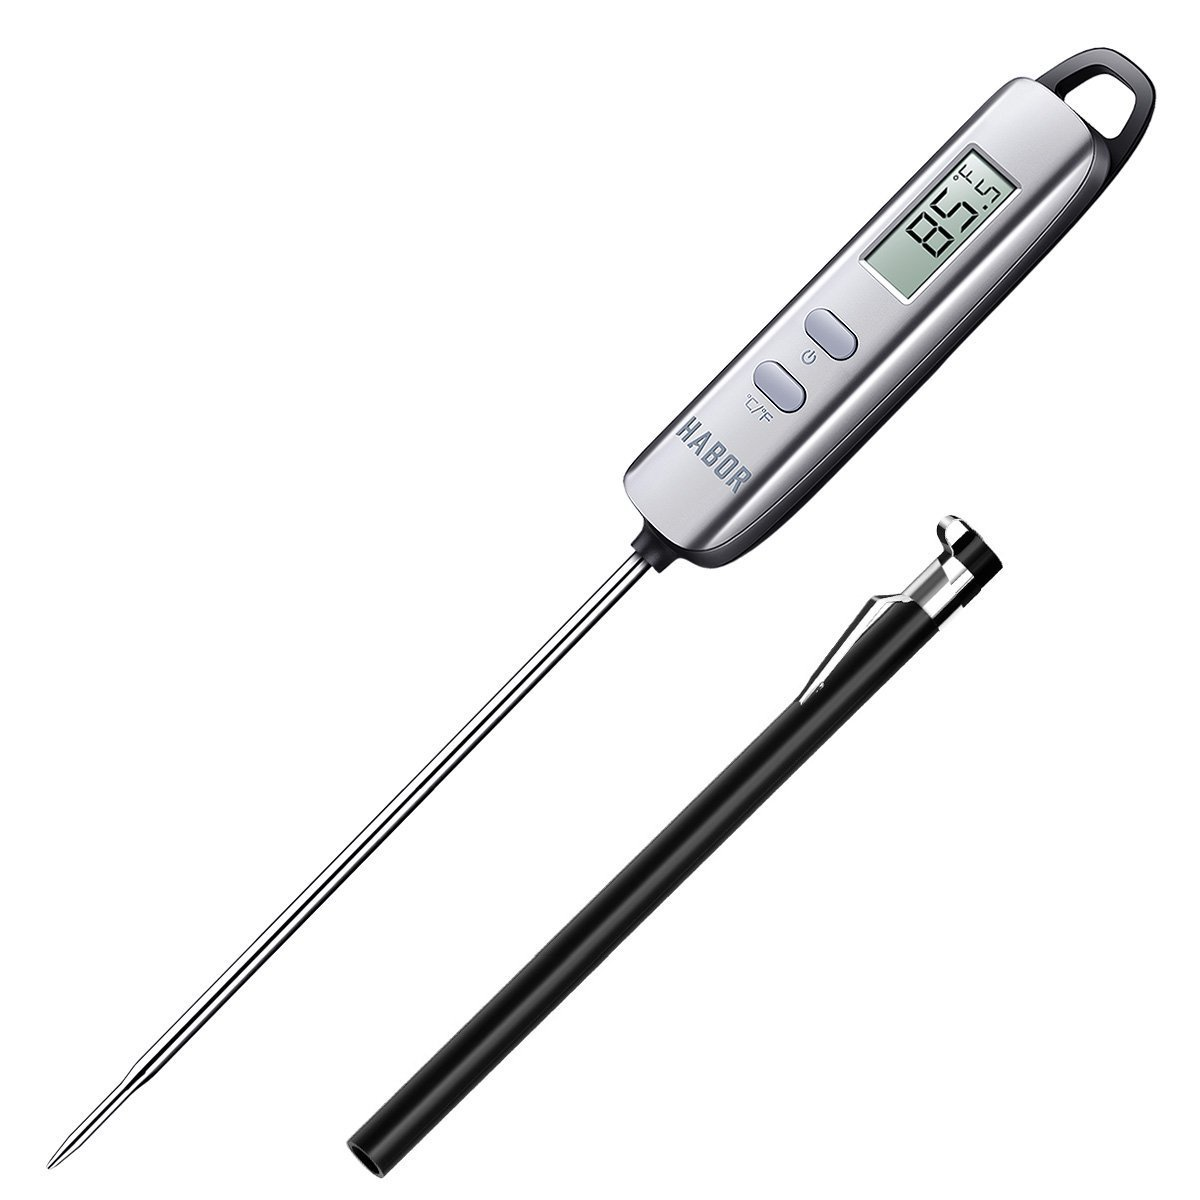 Habor 022 Meat Thermometer, Instant Read Thermometer Digital Cooking Thermometer, Candy Thermometer with Super Long Probe for Kitchen BBQ Grill Smoker Meat Oil Milk Yogurt Temperature by Habor